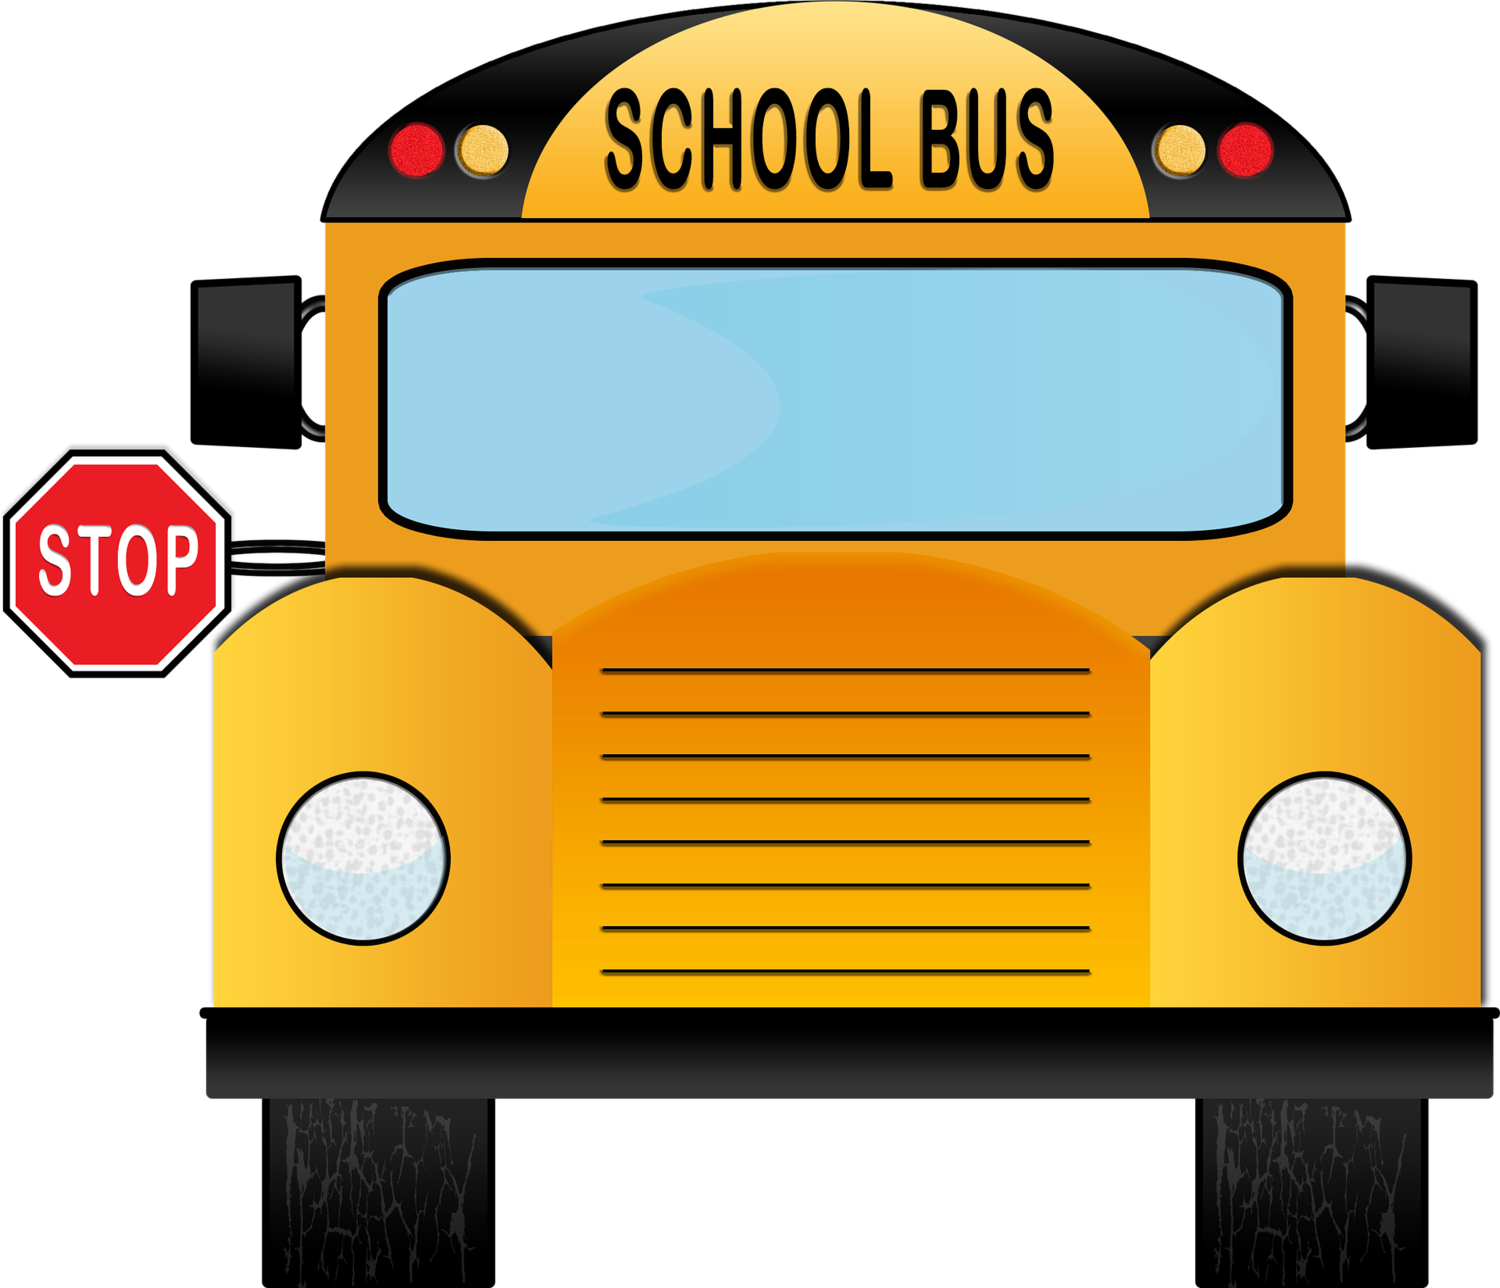 school-bus-1563493_1920.png